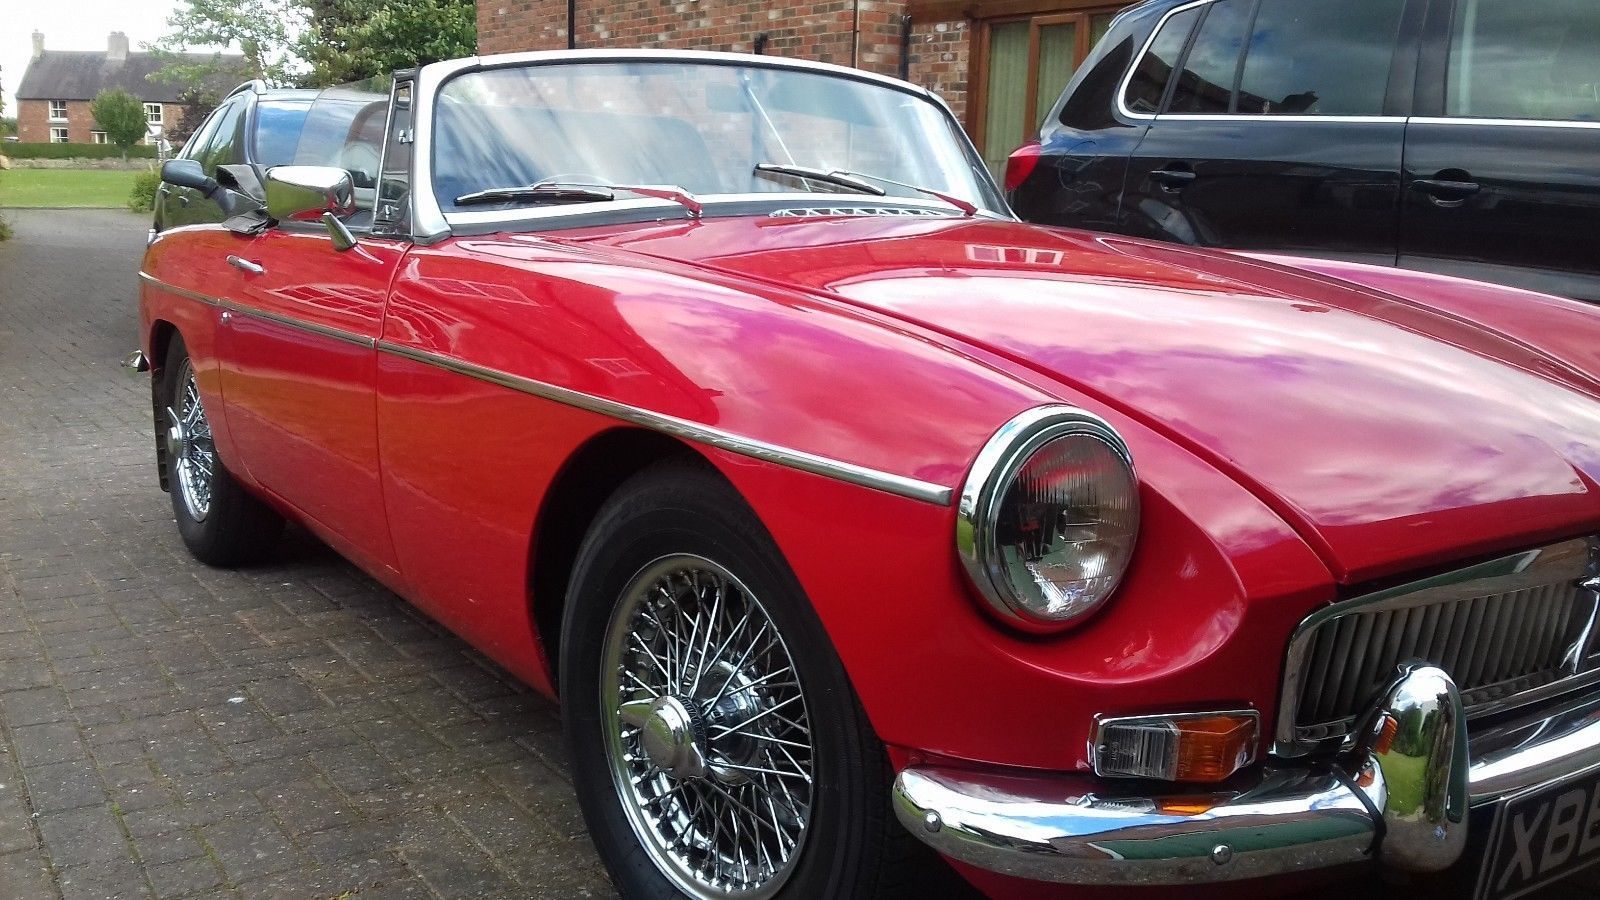 Ebay 1970 Mgb Roadster Classicmg Mg Mgoc Roadsters Classic Car Sales Cars For Sale